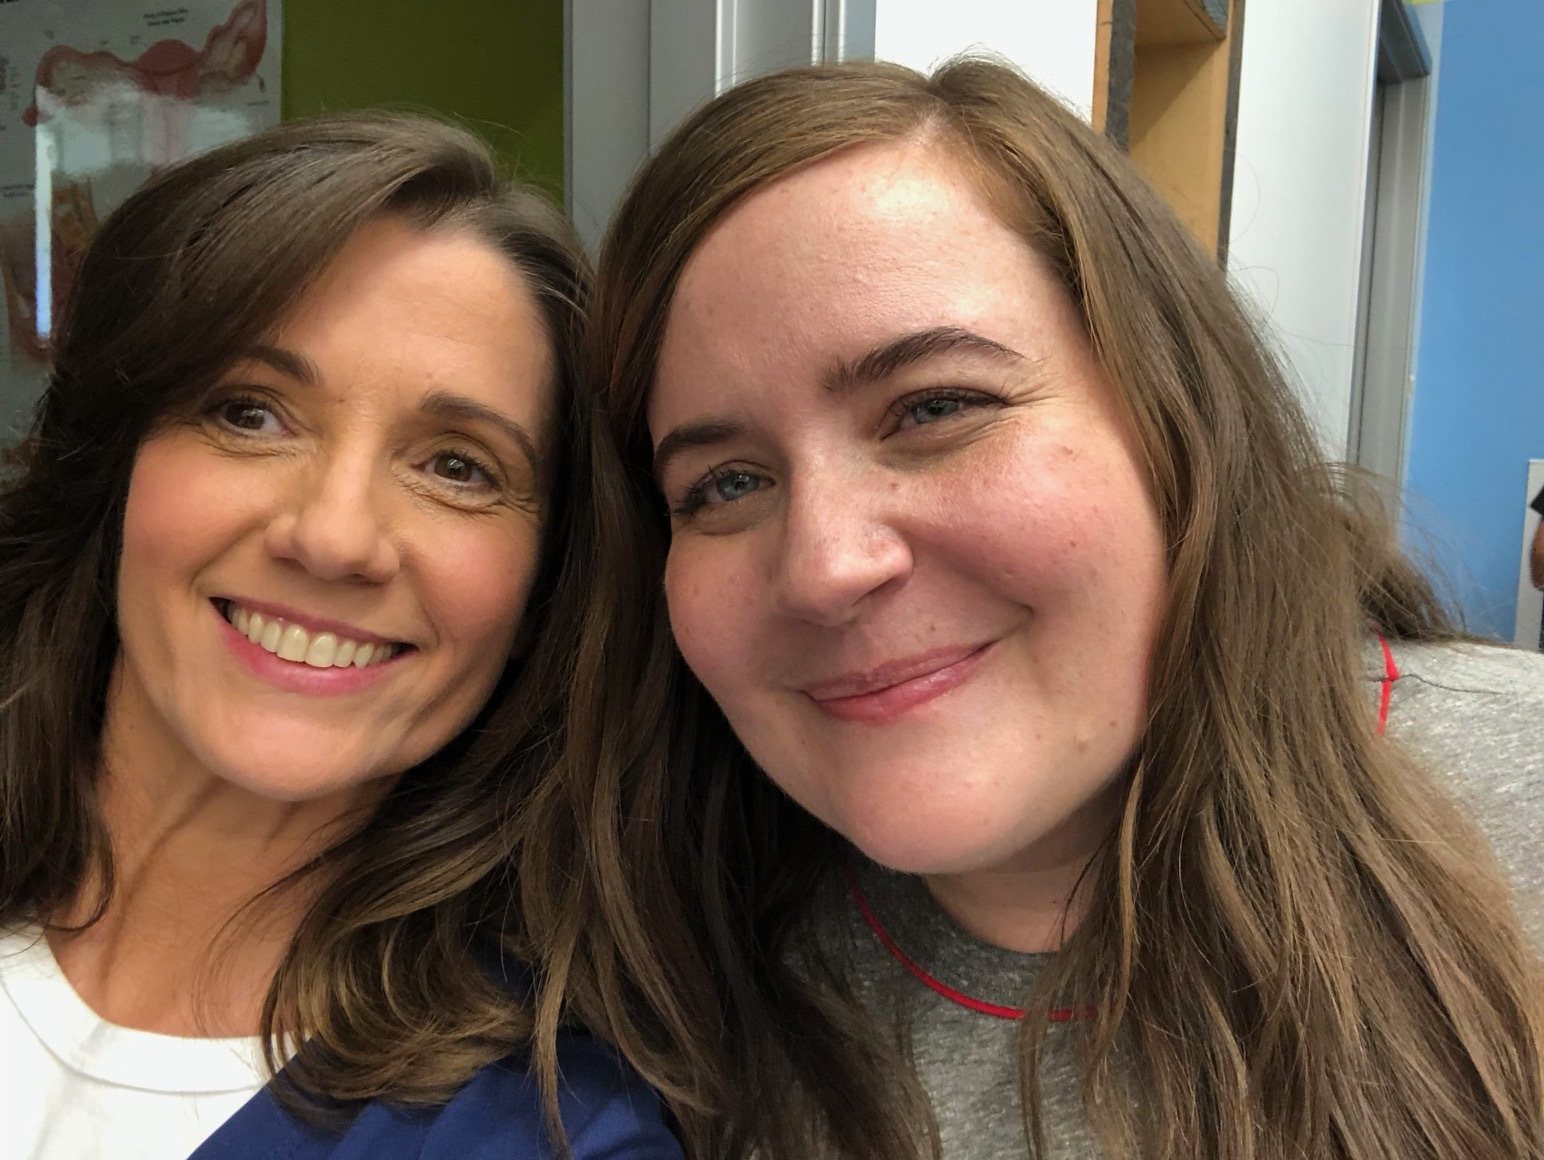 On set after filming with Aidy Bryant.